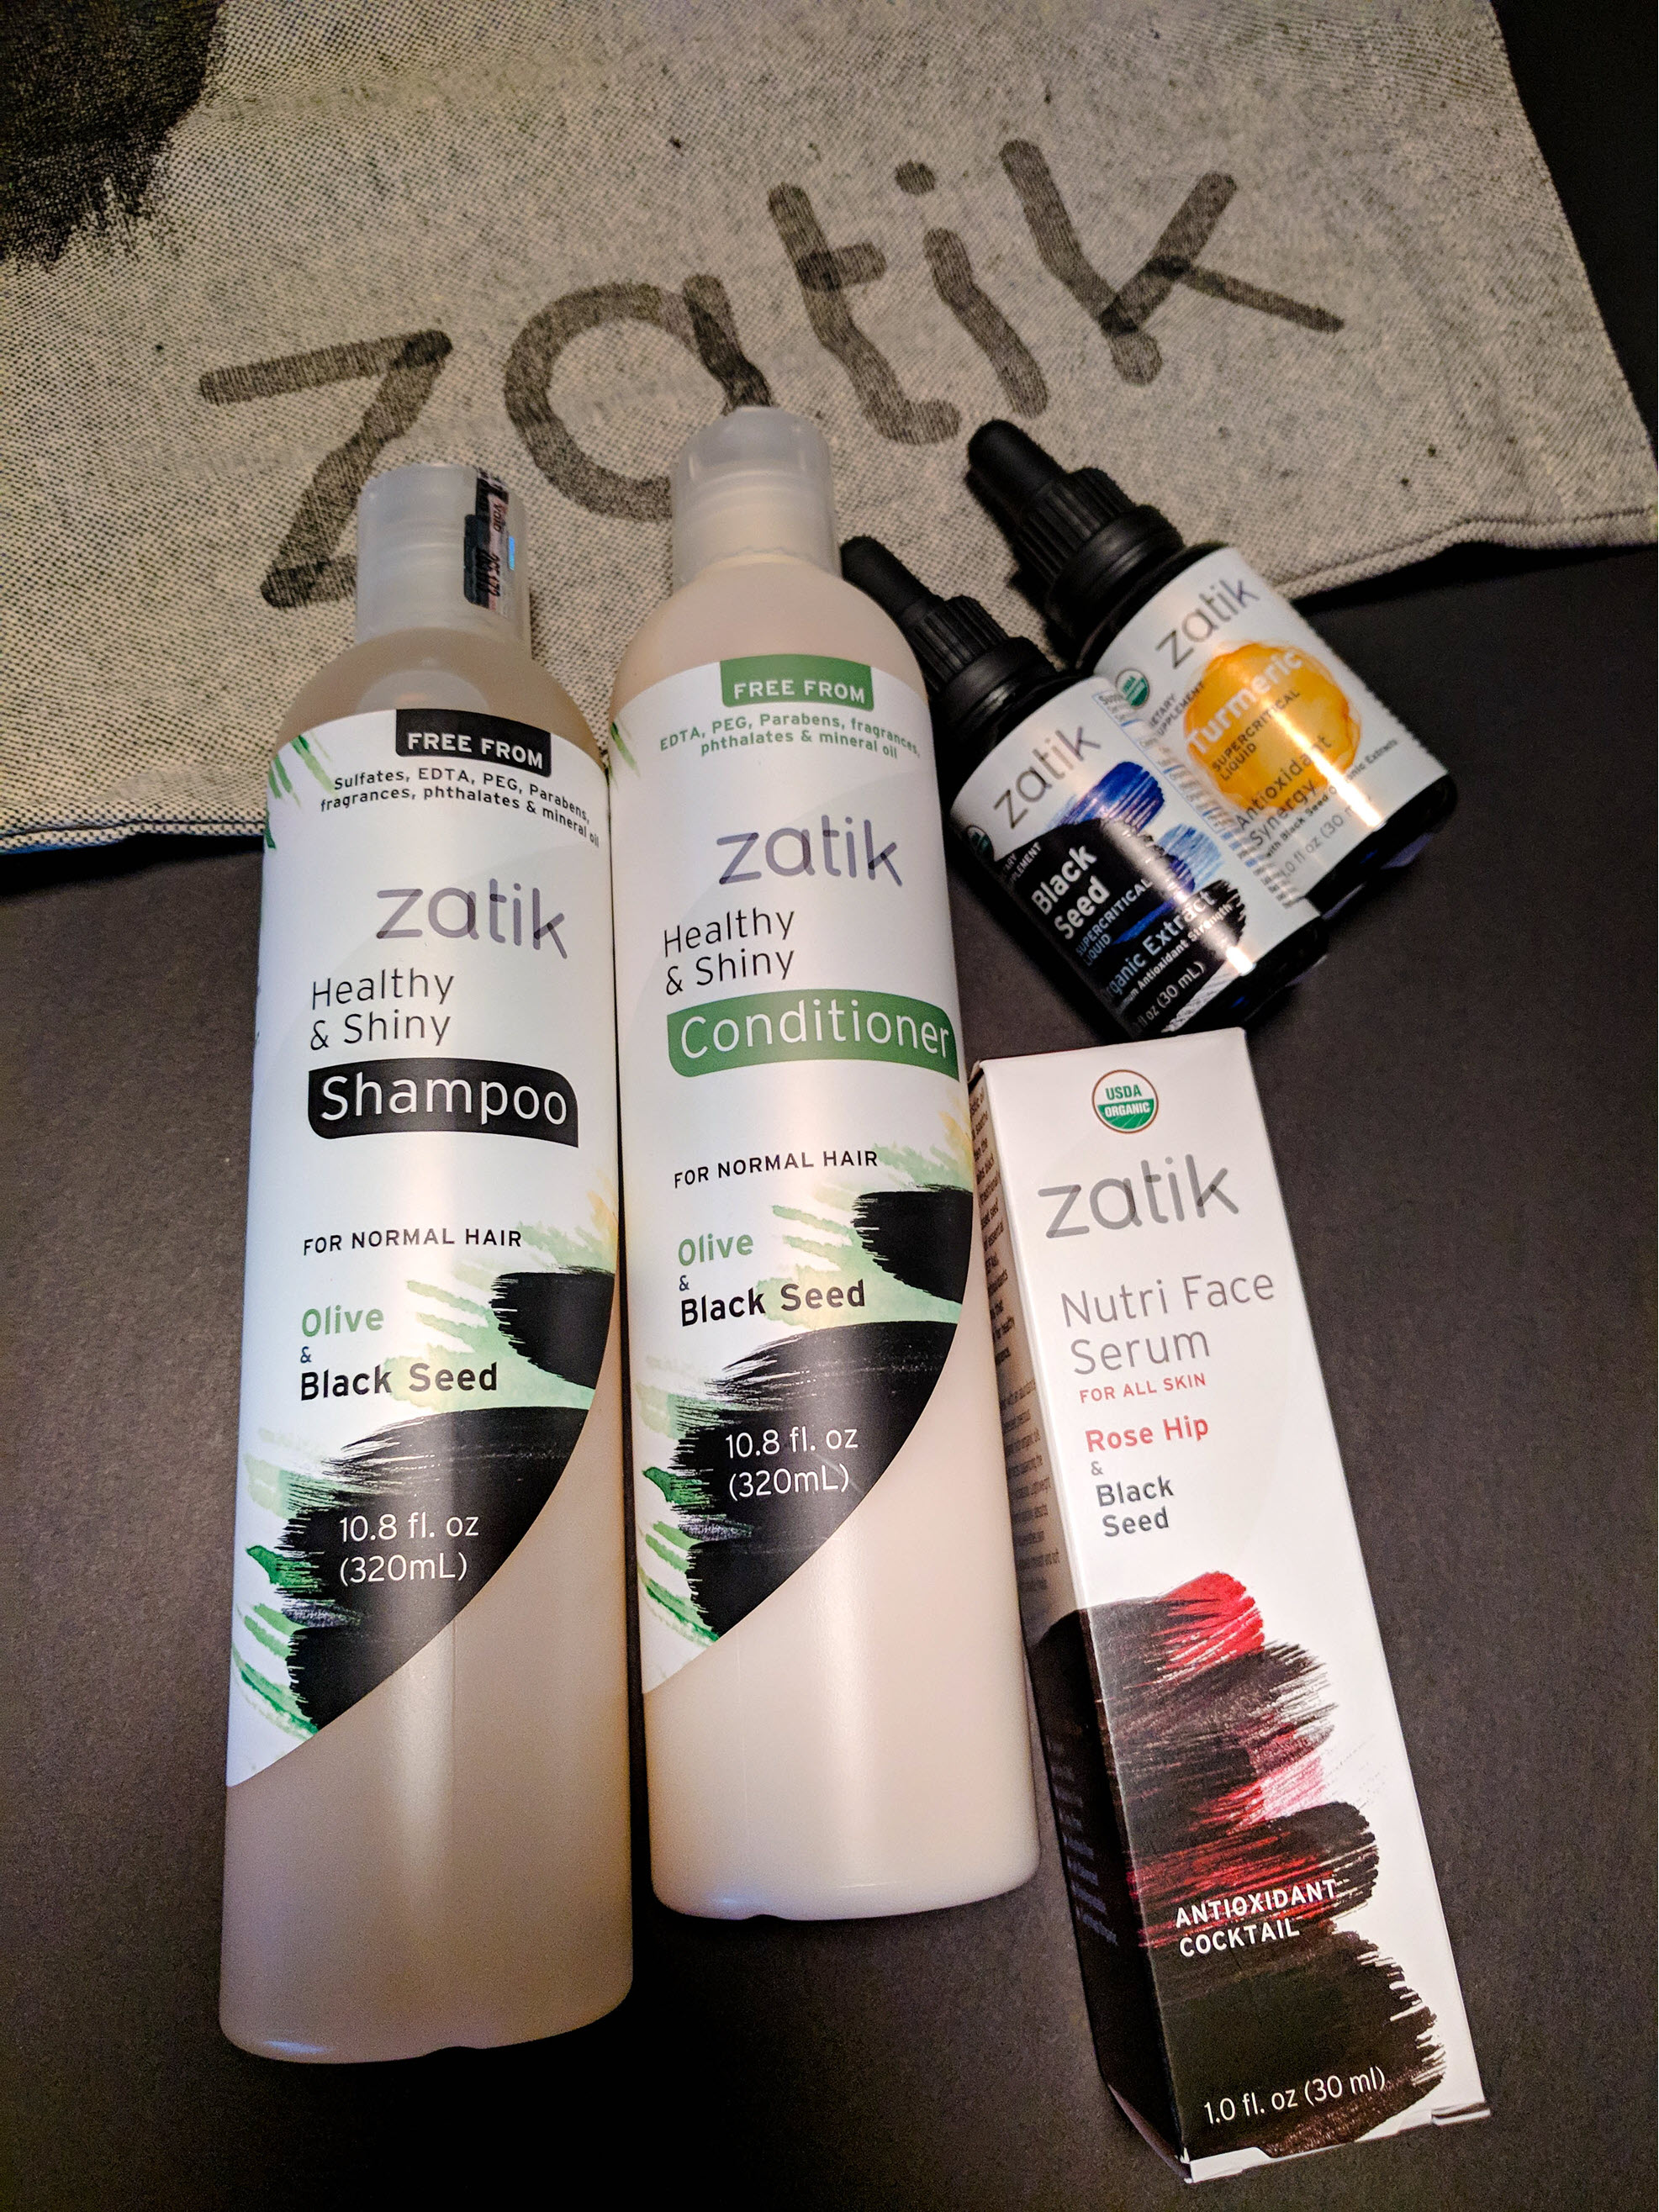 Zatik Naturals Feel Good Look Good